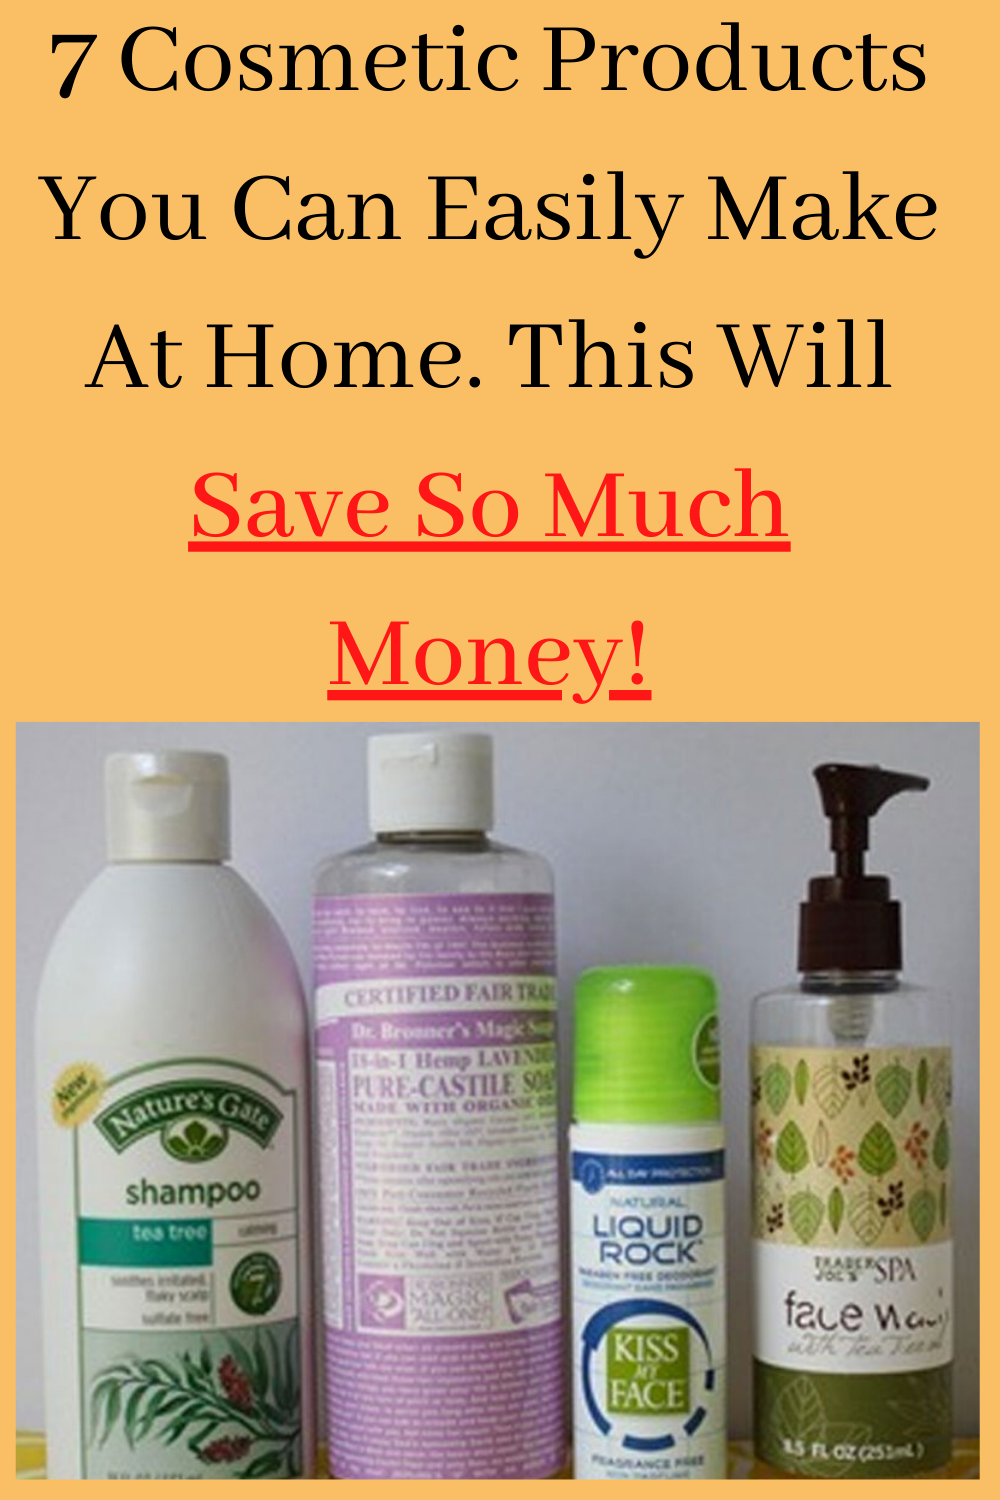 7 Cosmetic Products You Can Easily Make At Home This Will Save So Much Money In 2020 Today Tips How To Make Cosmetics